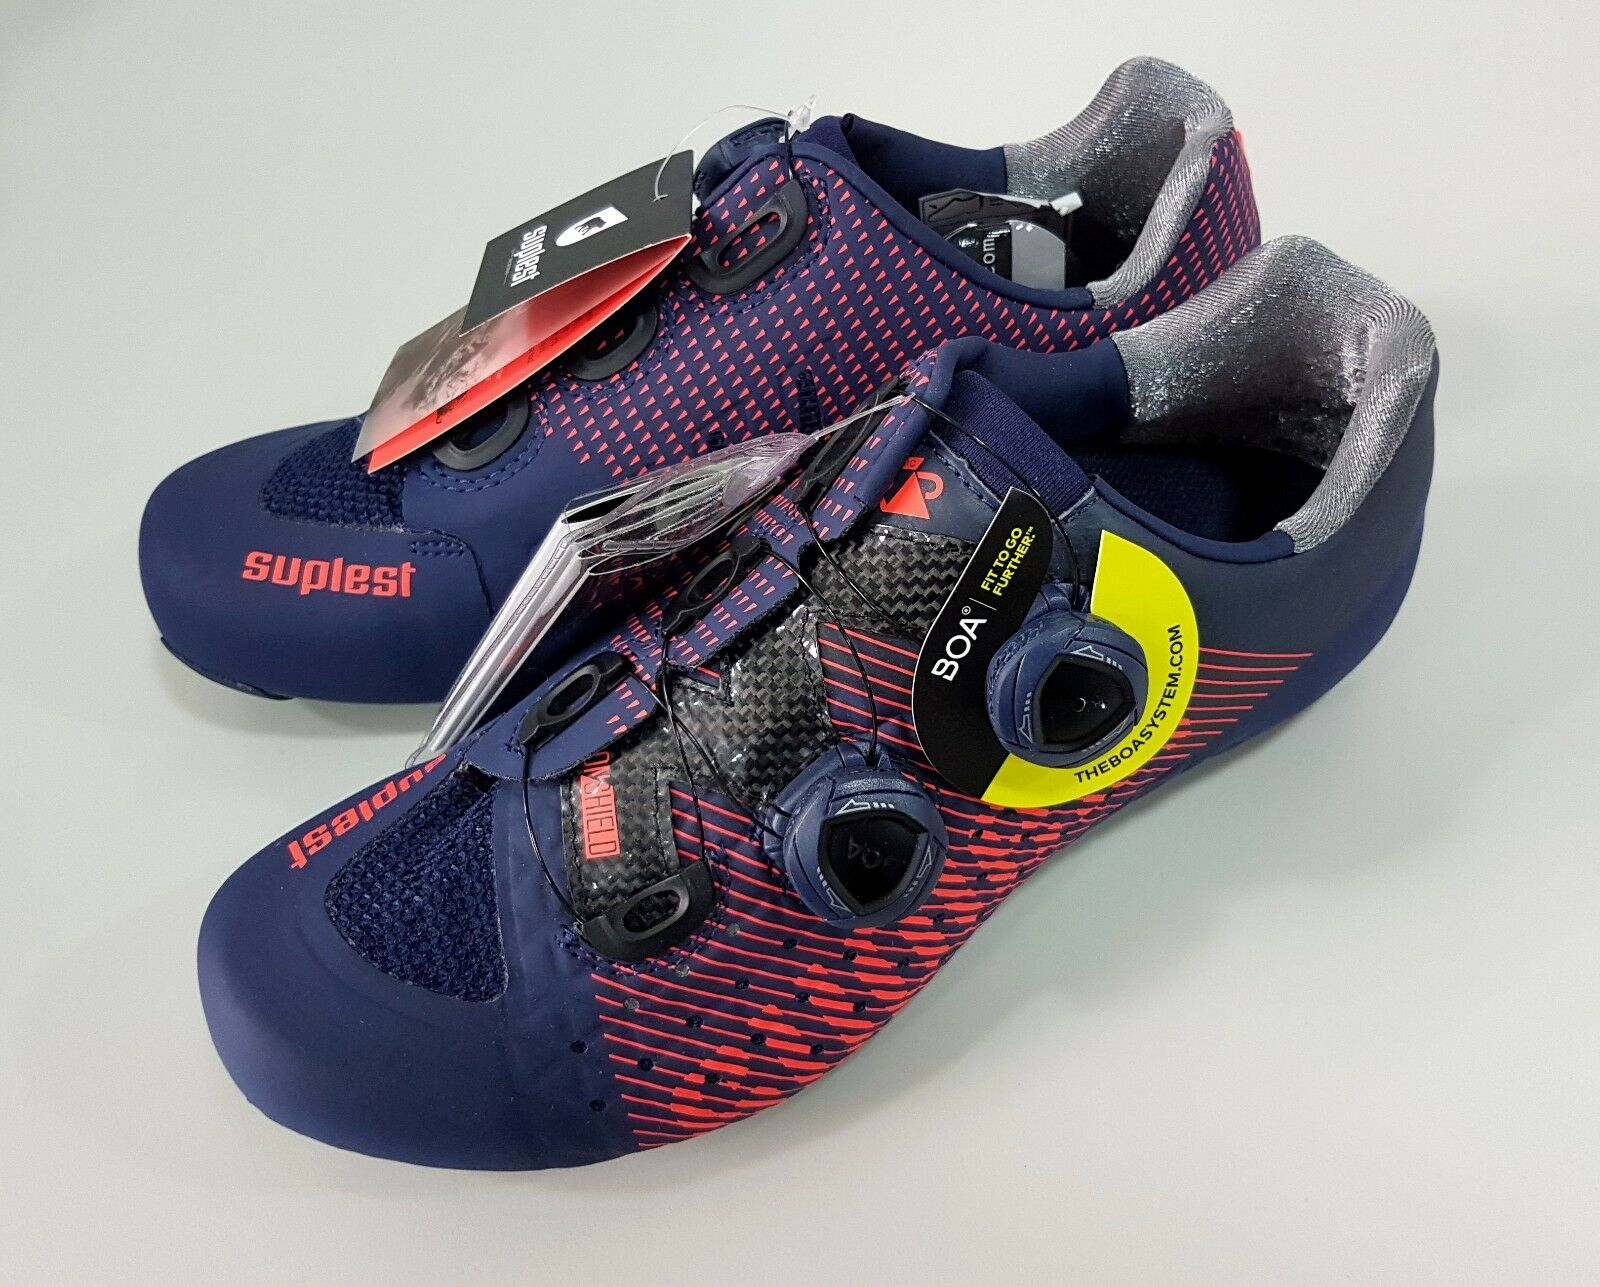 Suplest Edge  3 Pro Road Carbon Bicycle Cycling shoes Size 42.5 Navy Coral  outlet online